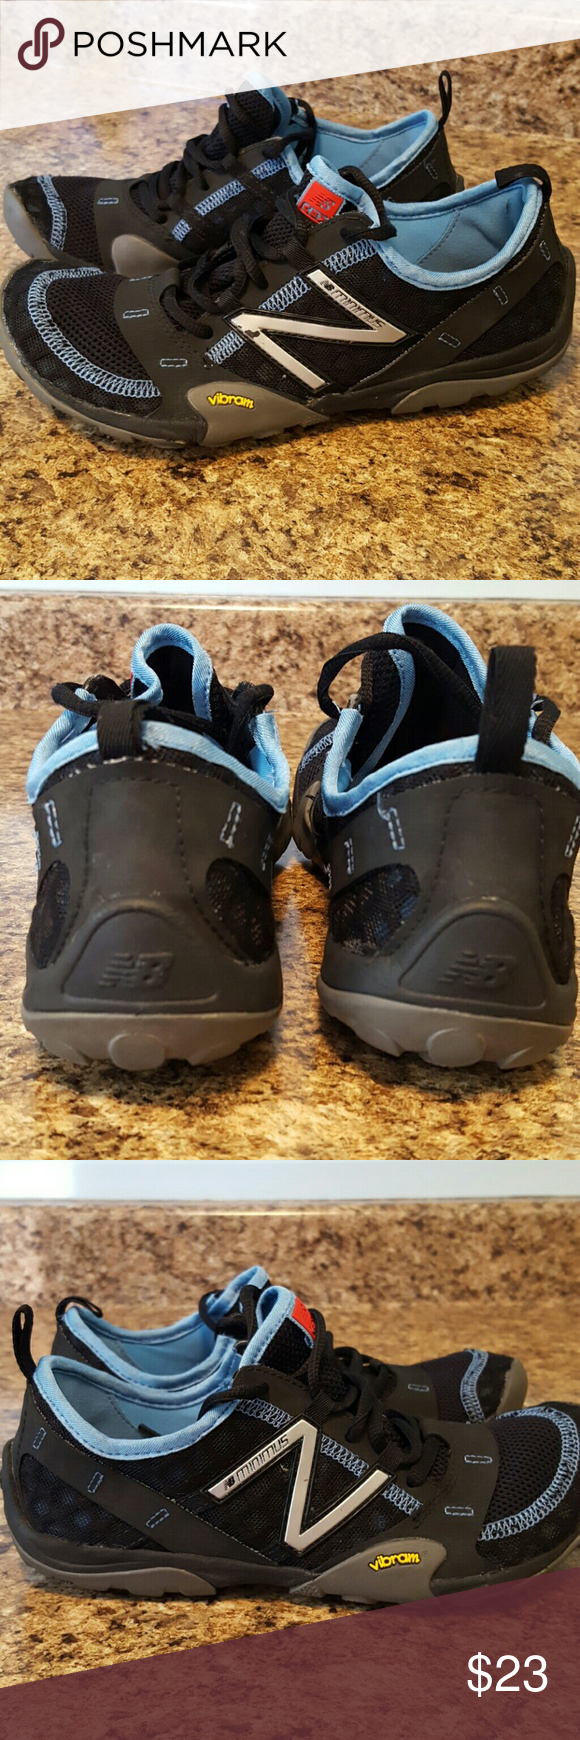 New Balance Minimus Awesome condition! Black and blue Minimus with Vibram soles. Lightweight. Only worn a few times. Cool sneaks. New Balance Shoes Athletic Shoes